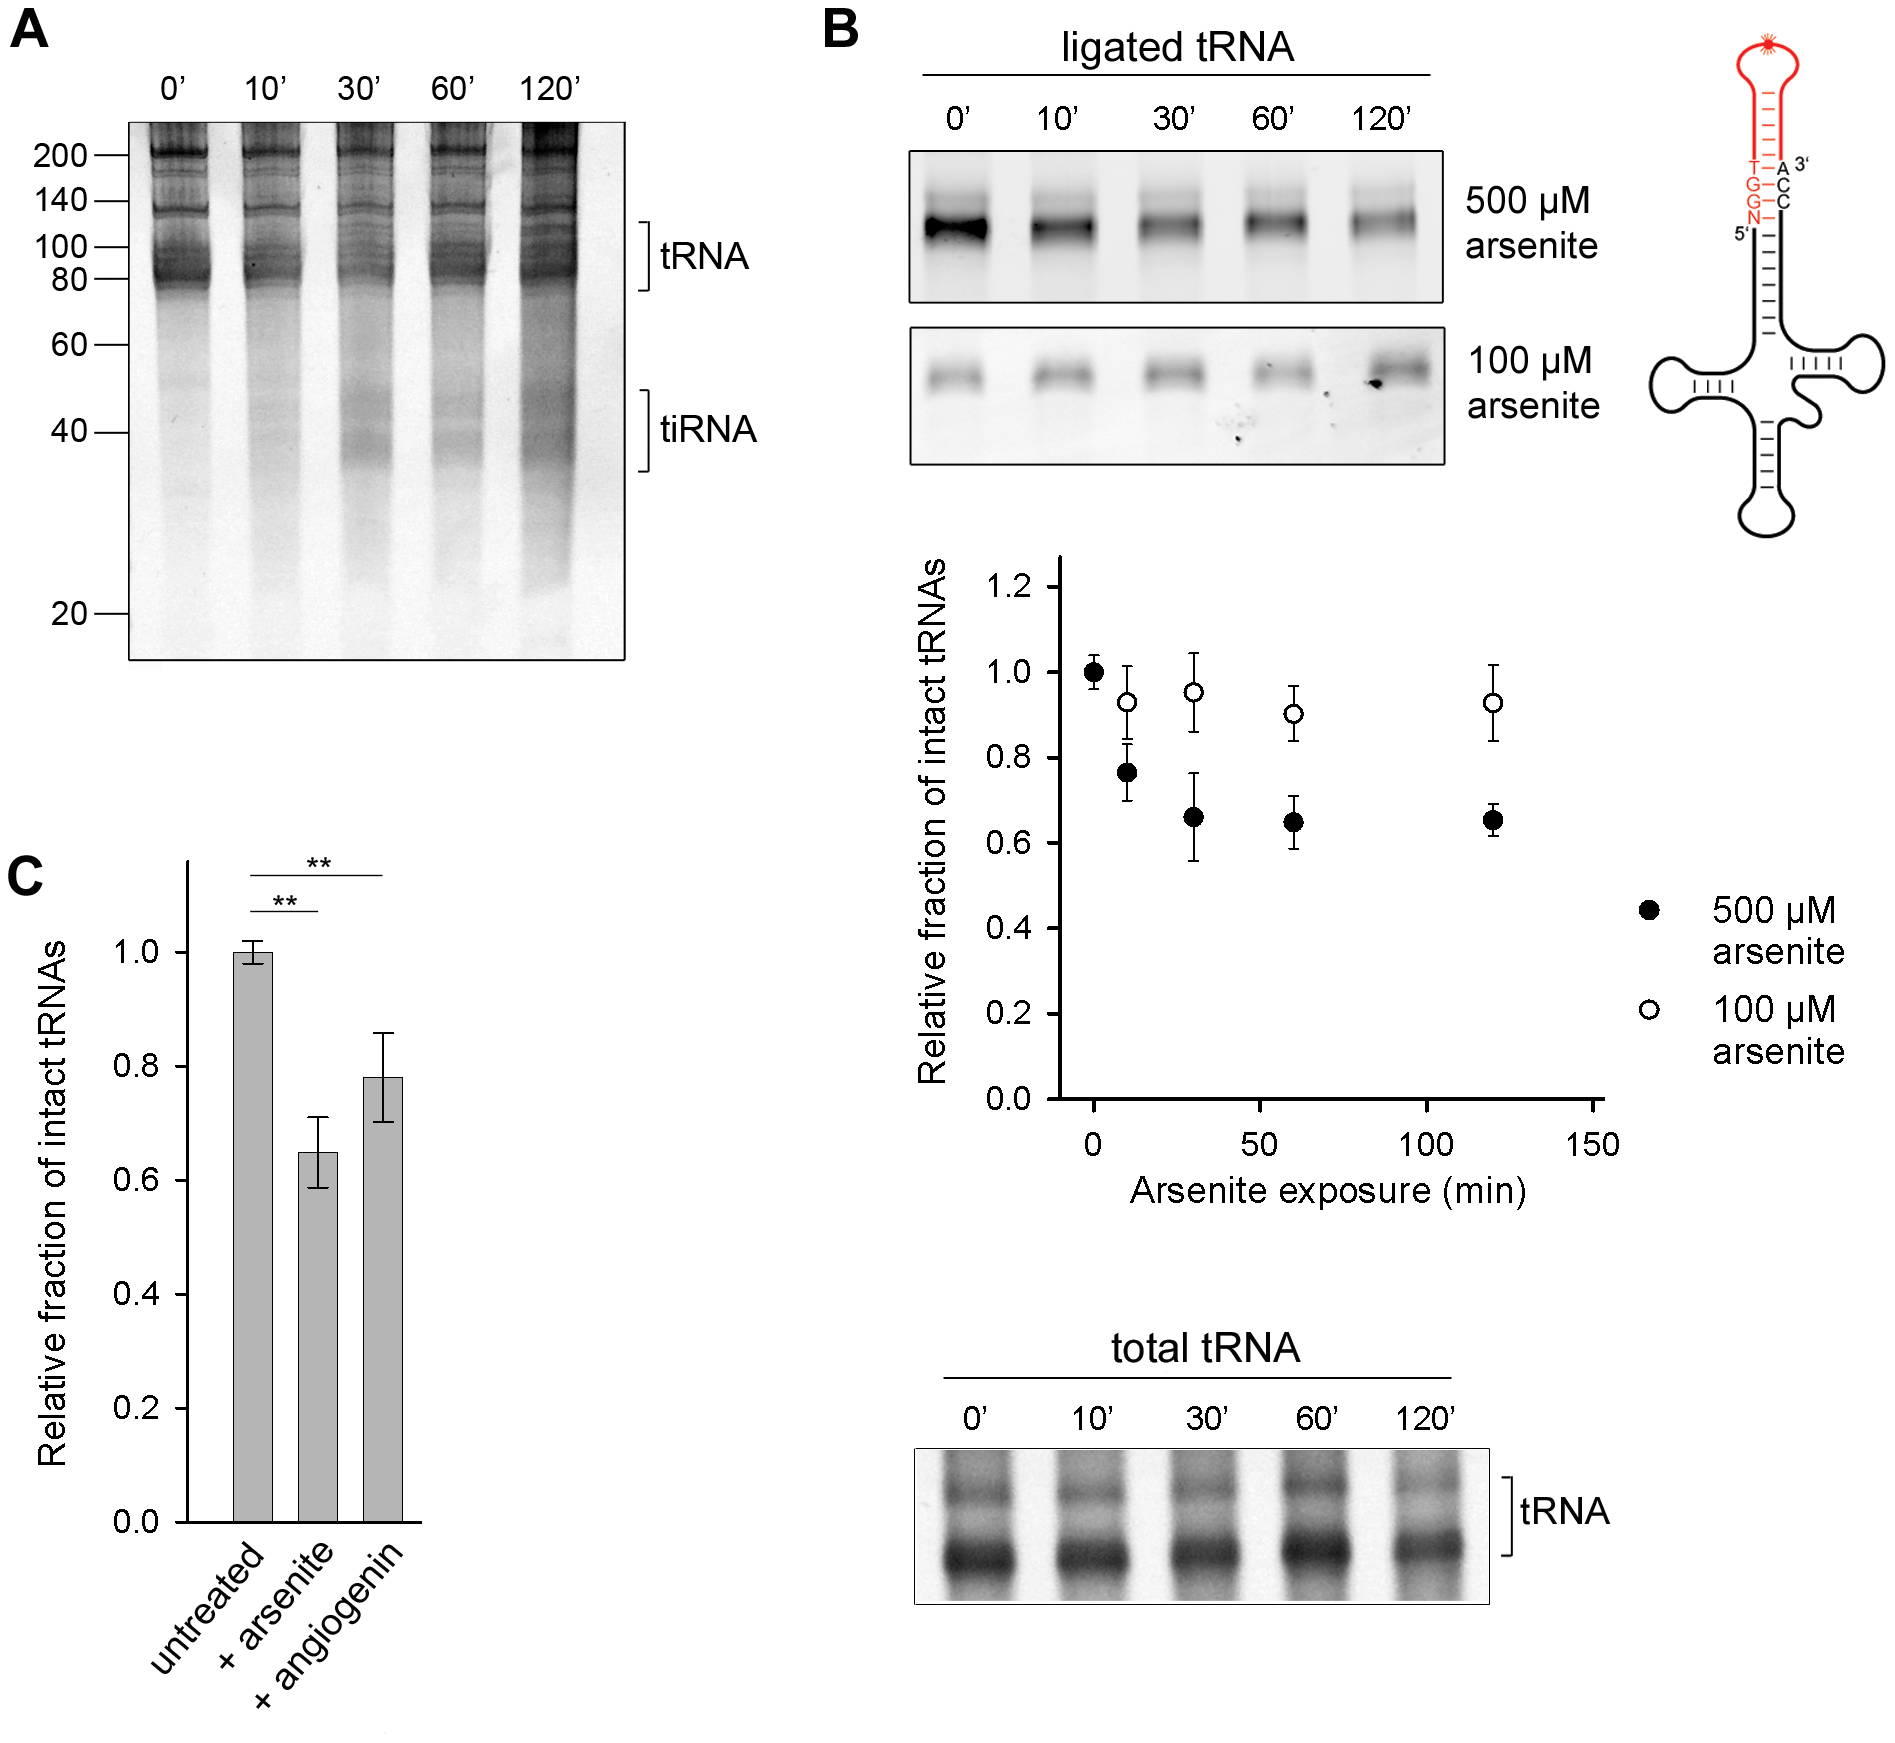 Oxidative stress-mediated tRNA cleavage in HeLa cells.